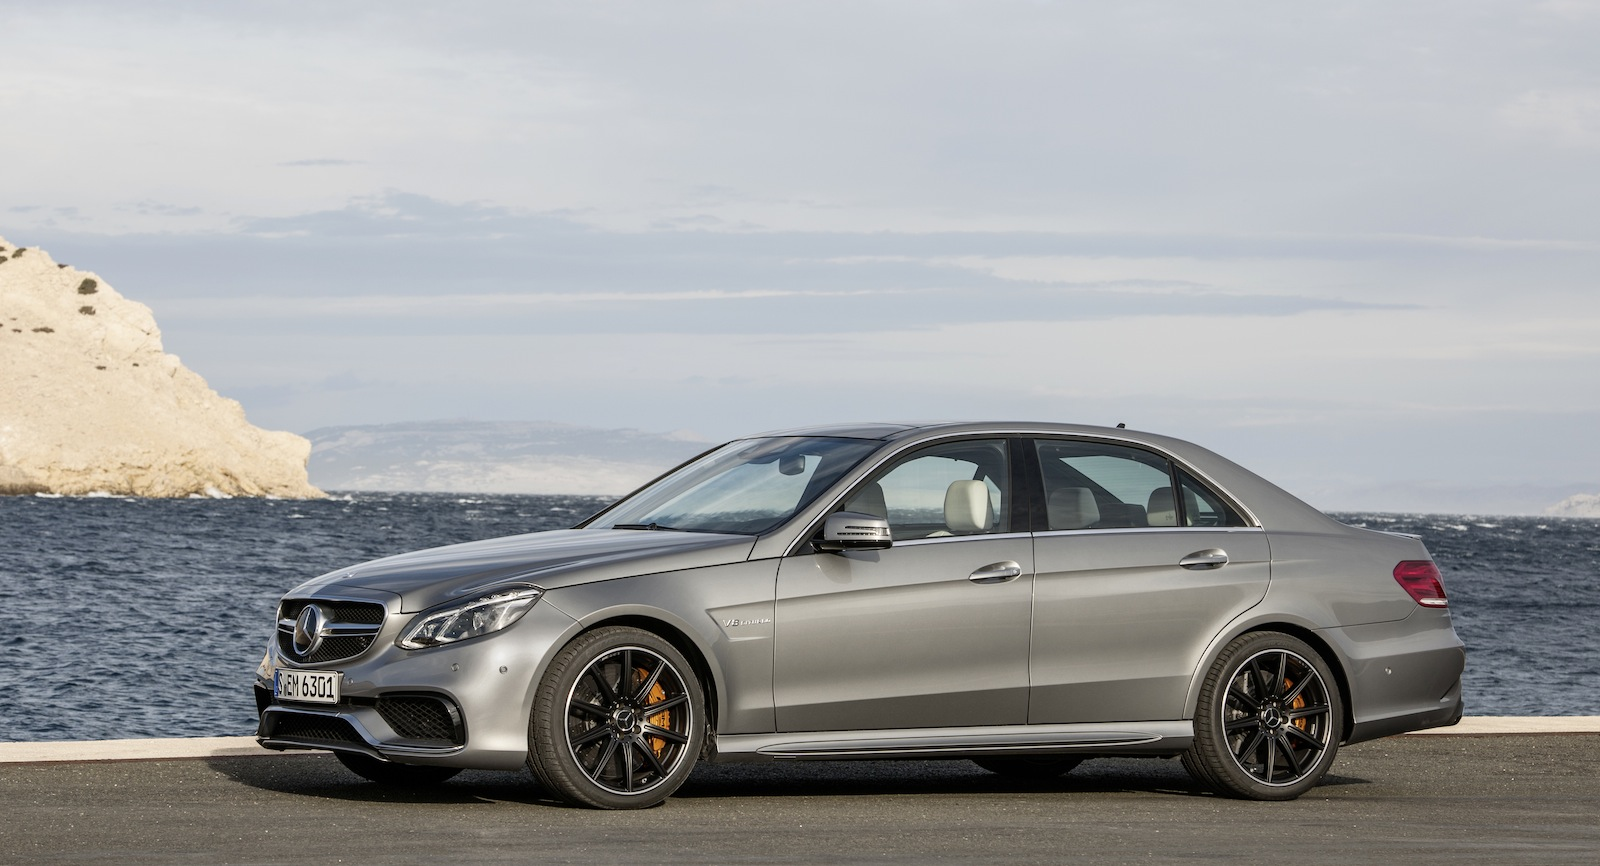 2013 Mercedes Benz E63 AMG 36sec 0 100kmh AWD Monster